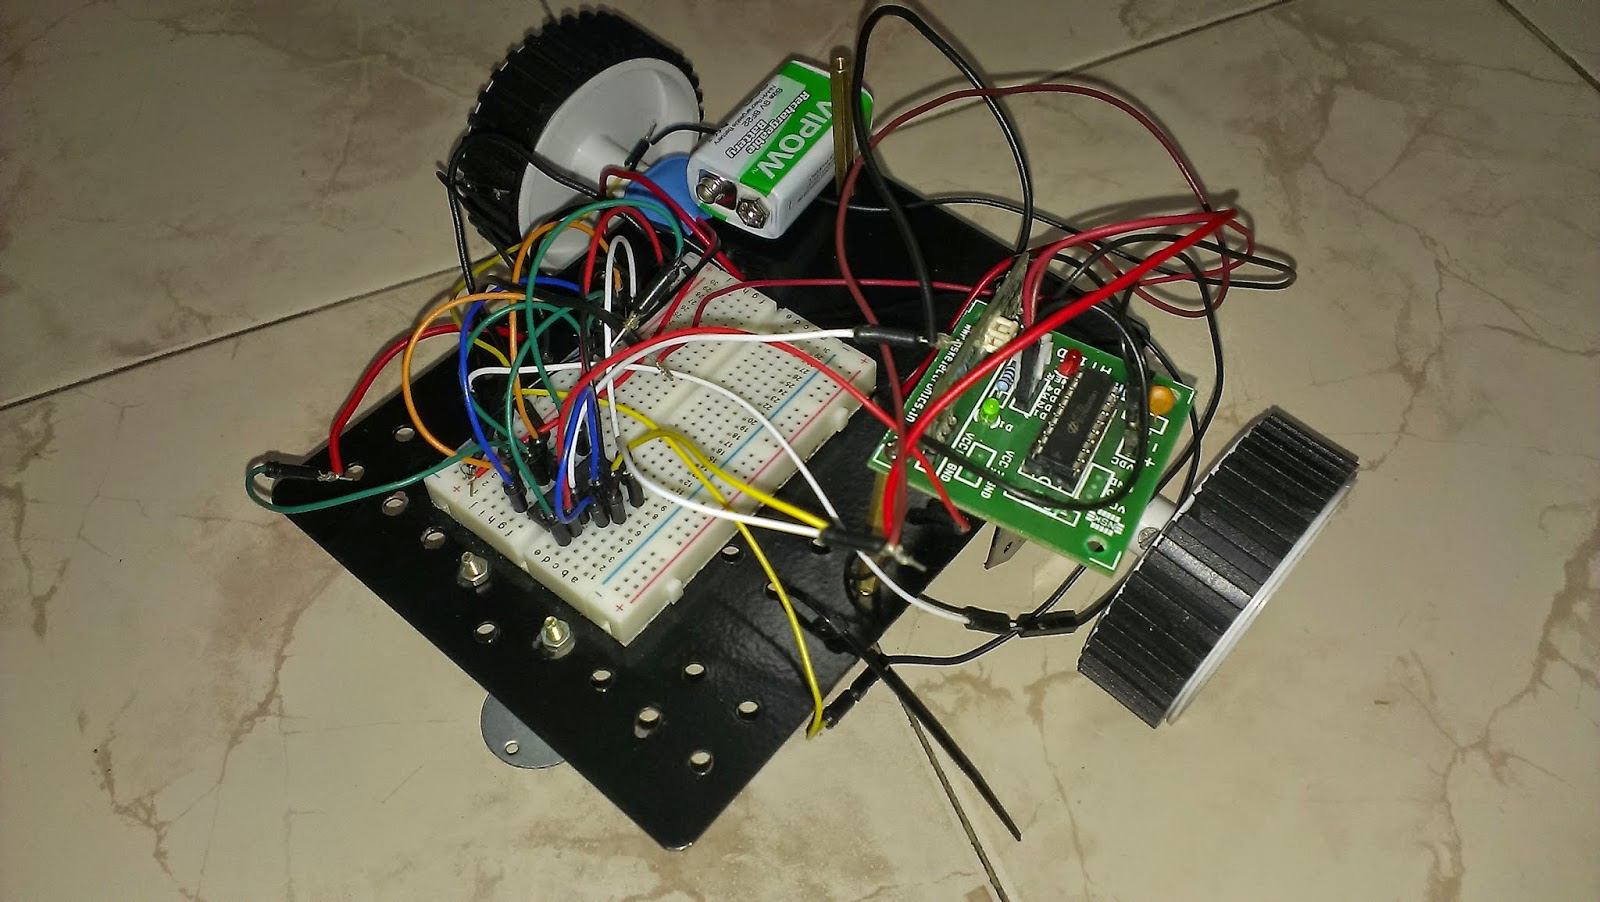 Cell Phone Controlled Robot Using 8051